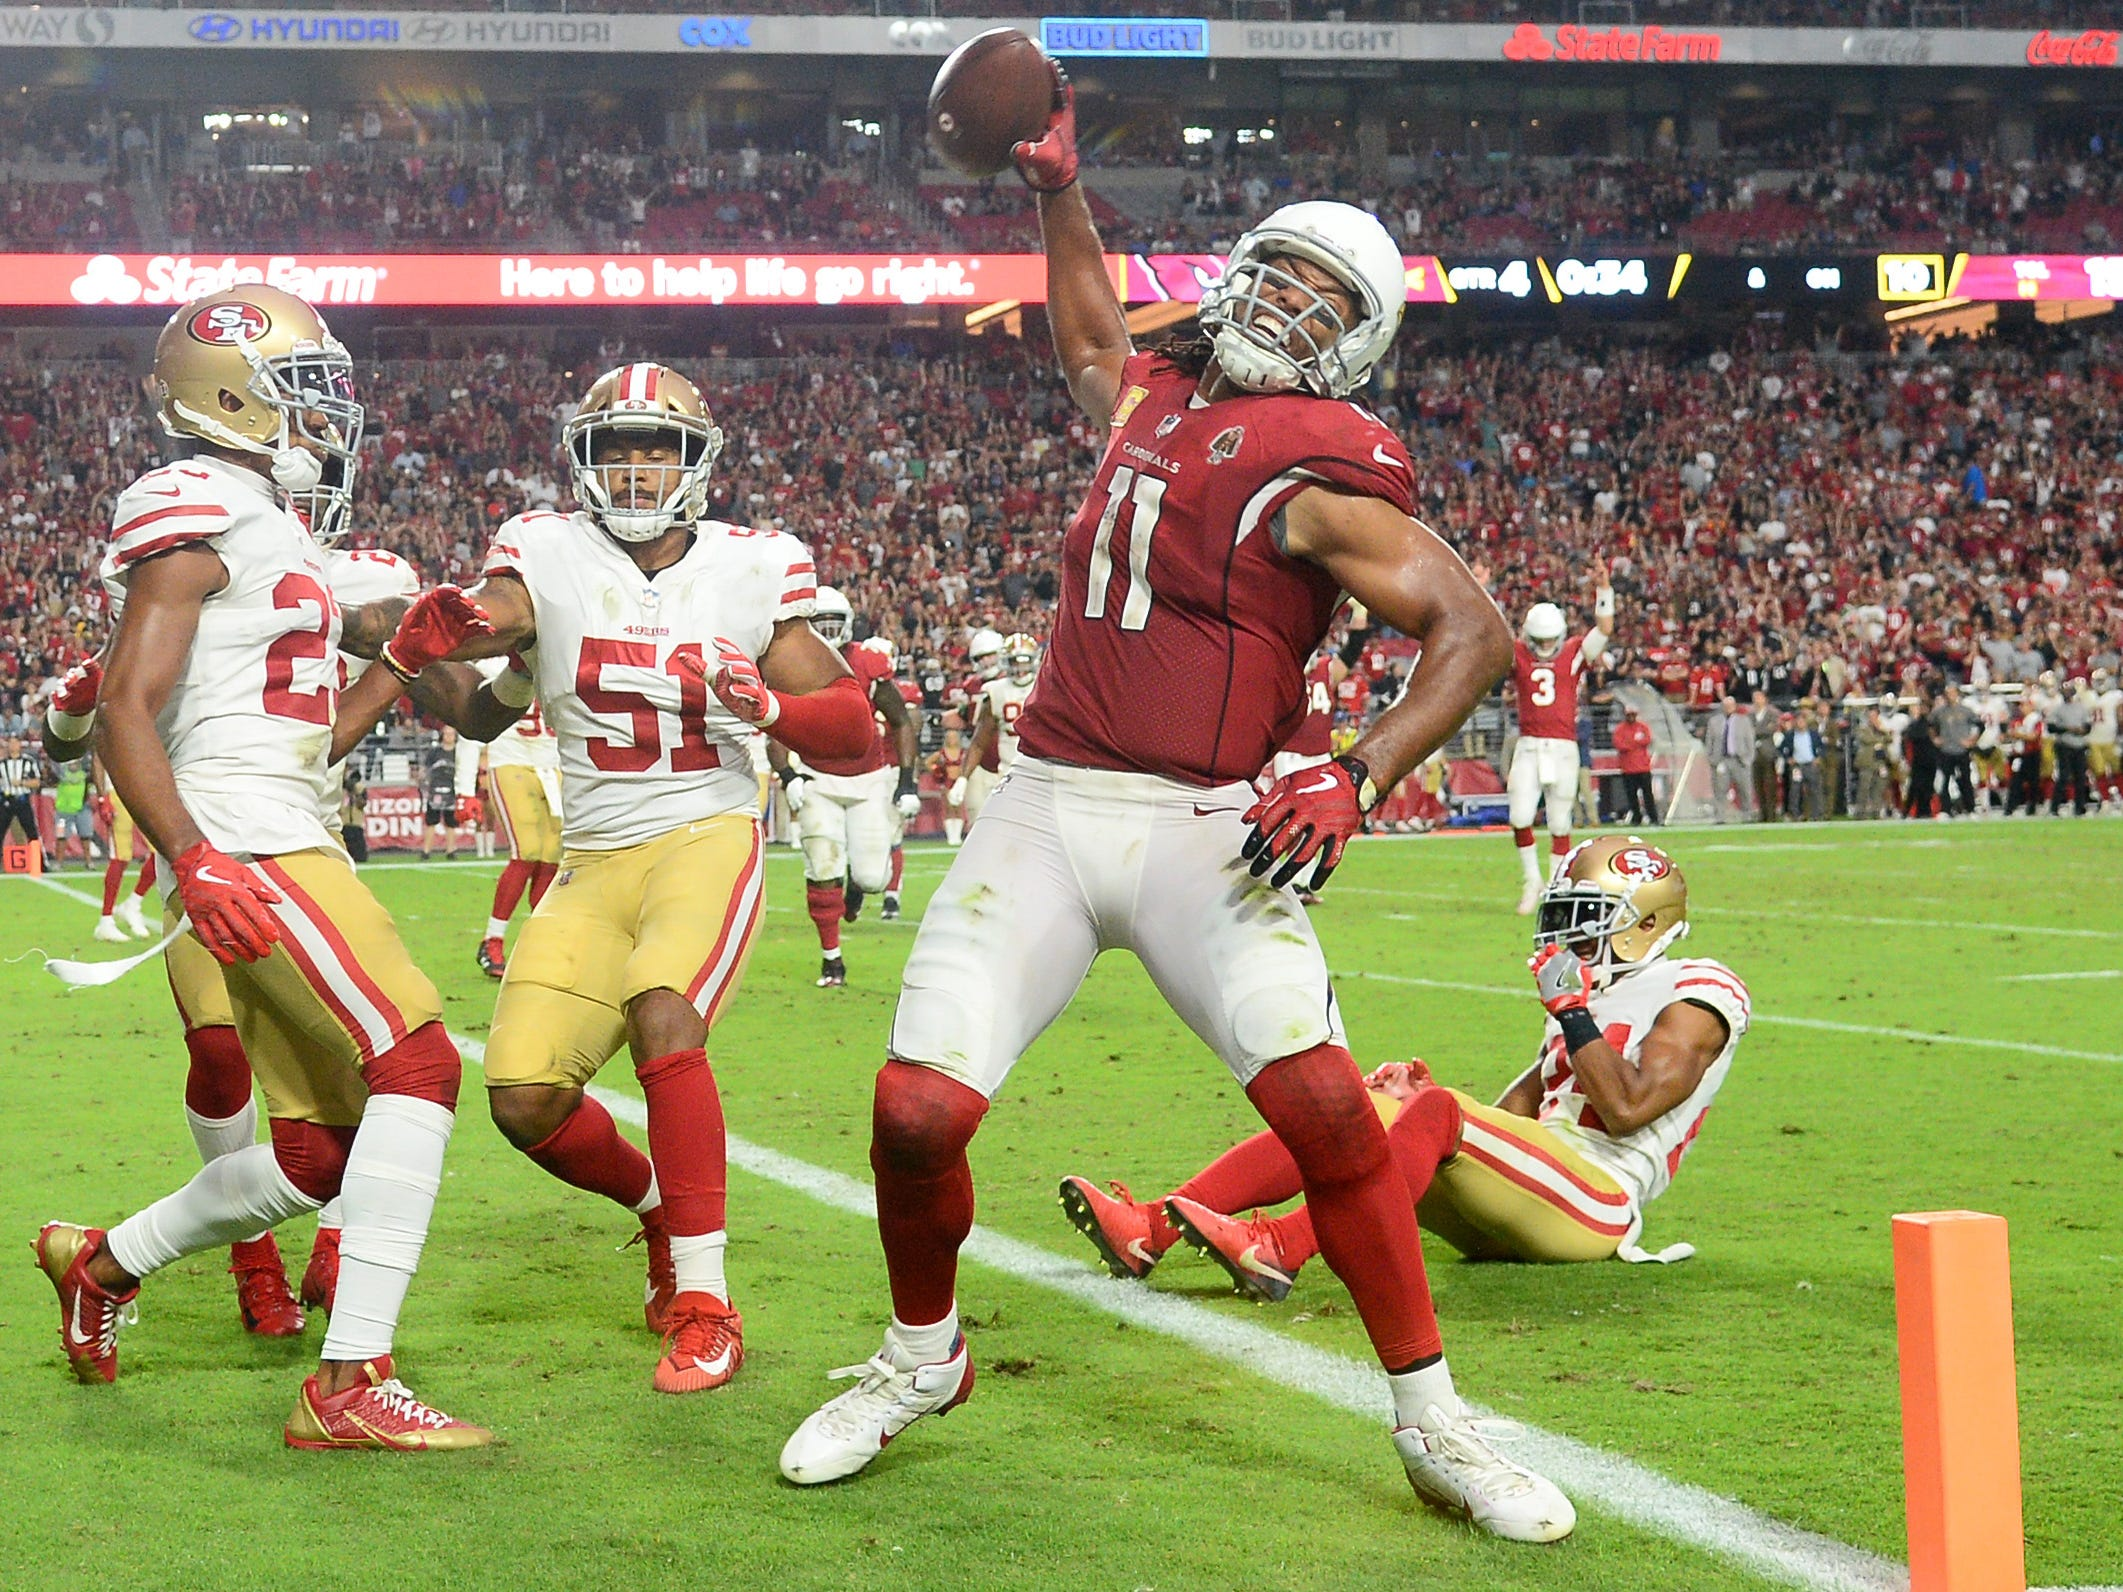 29. Cardinals (30): Trick — if Larry Fitzgerald's son tricked him into spiking a football for the first time in his life ... worthwhile ruse, kid.